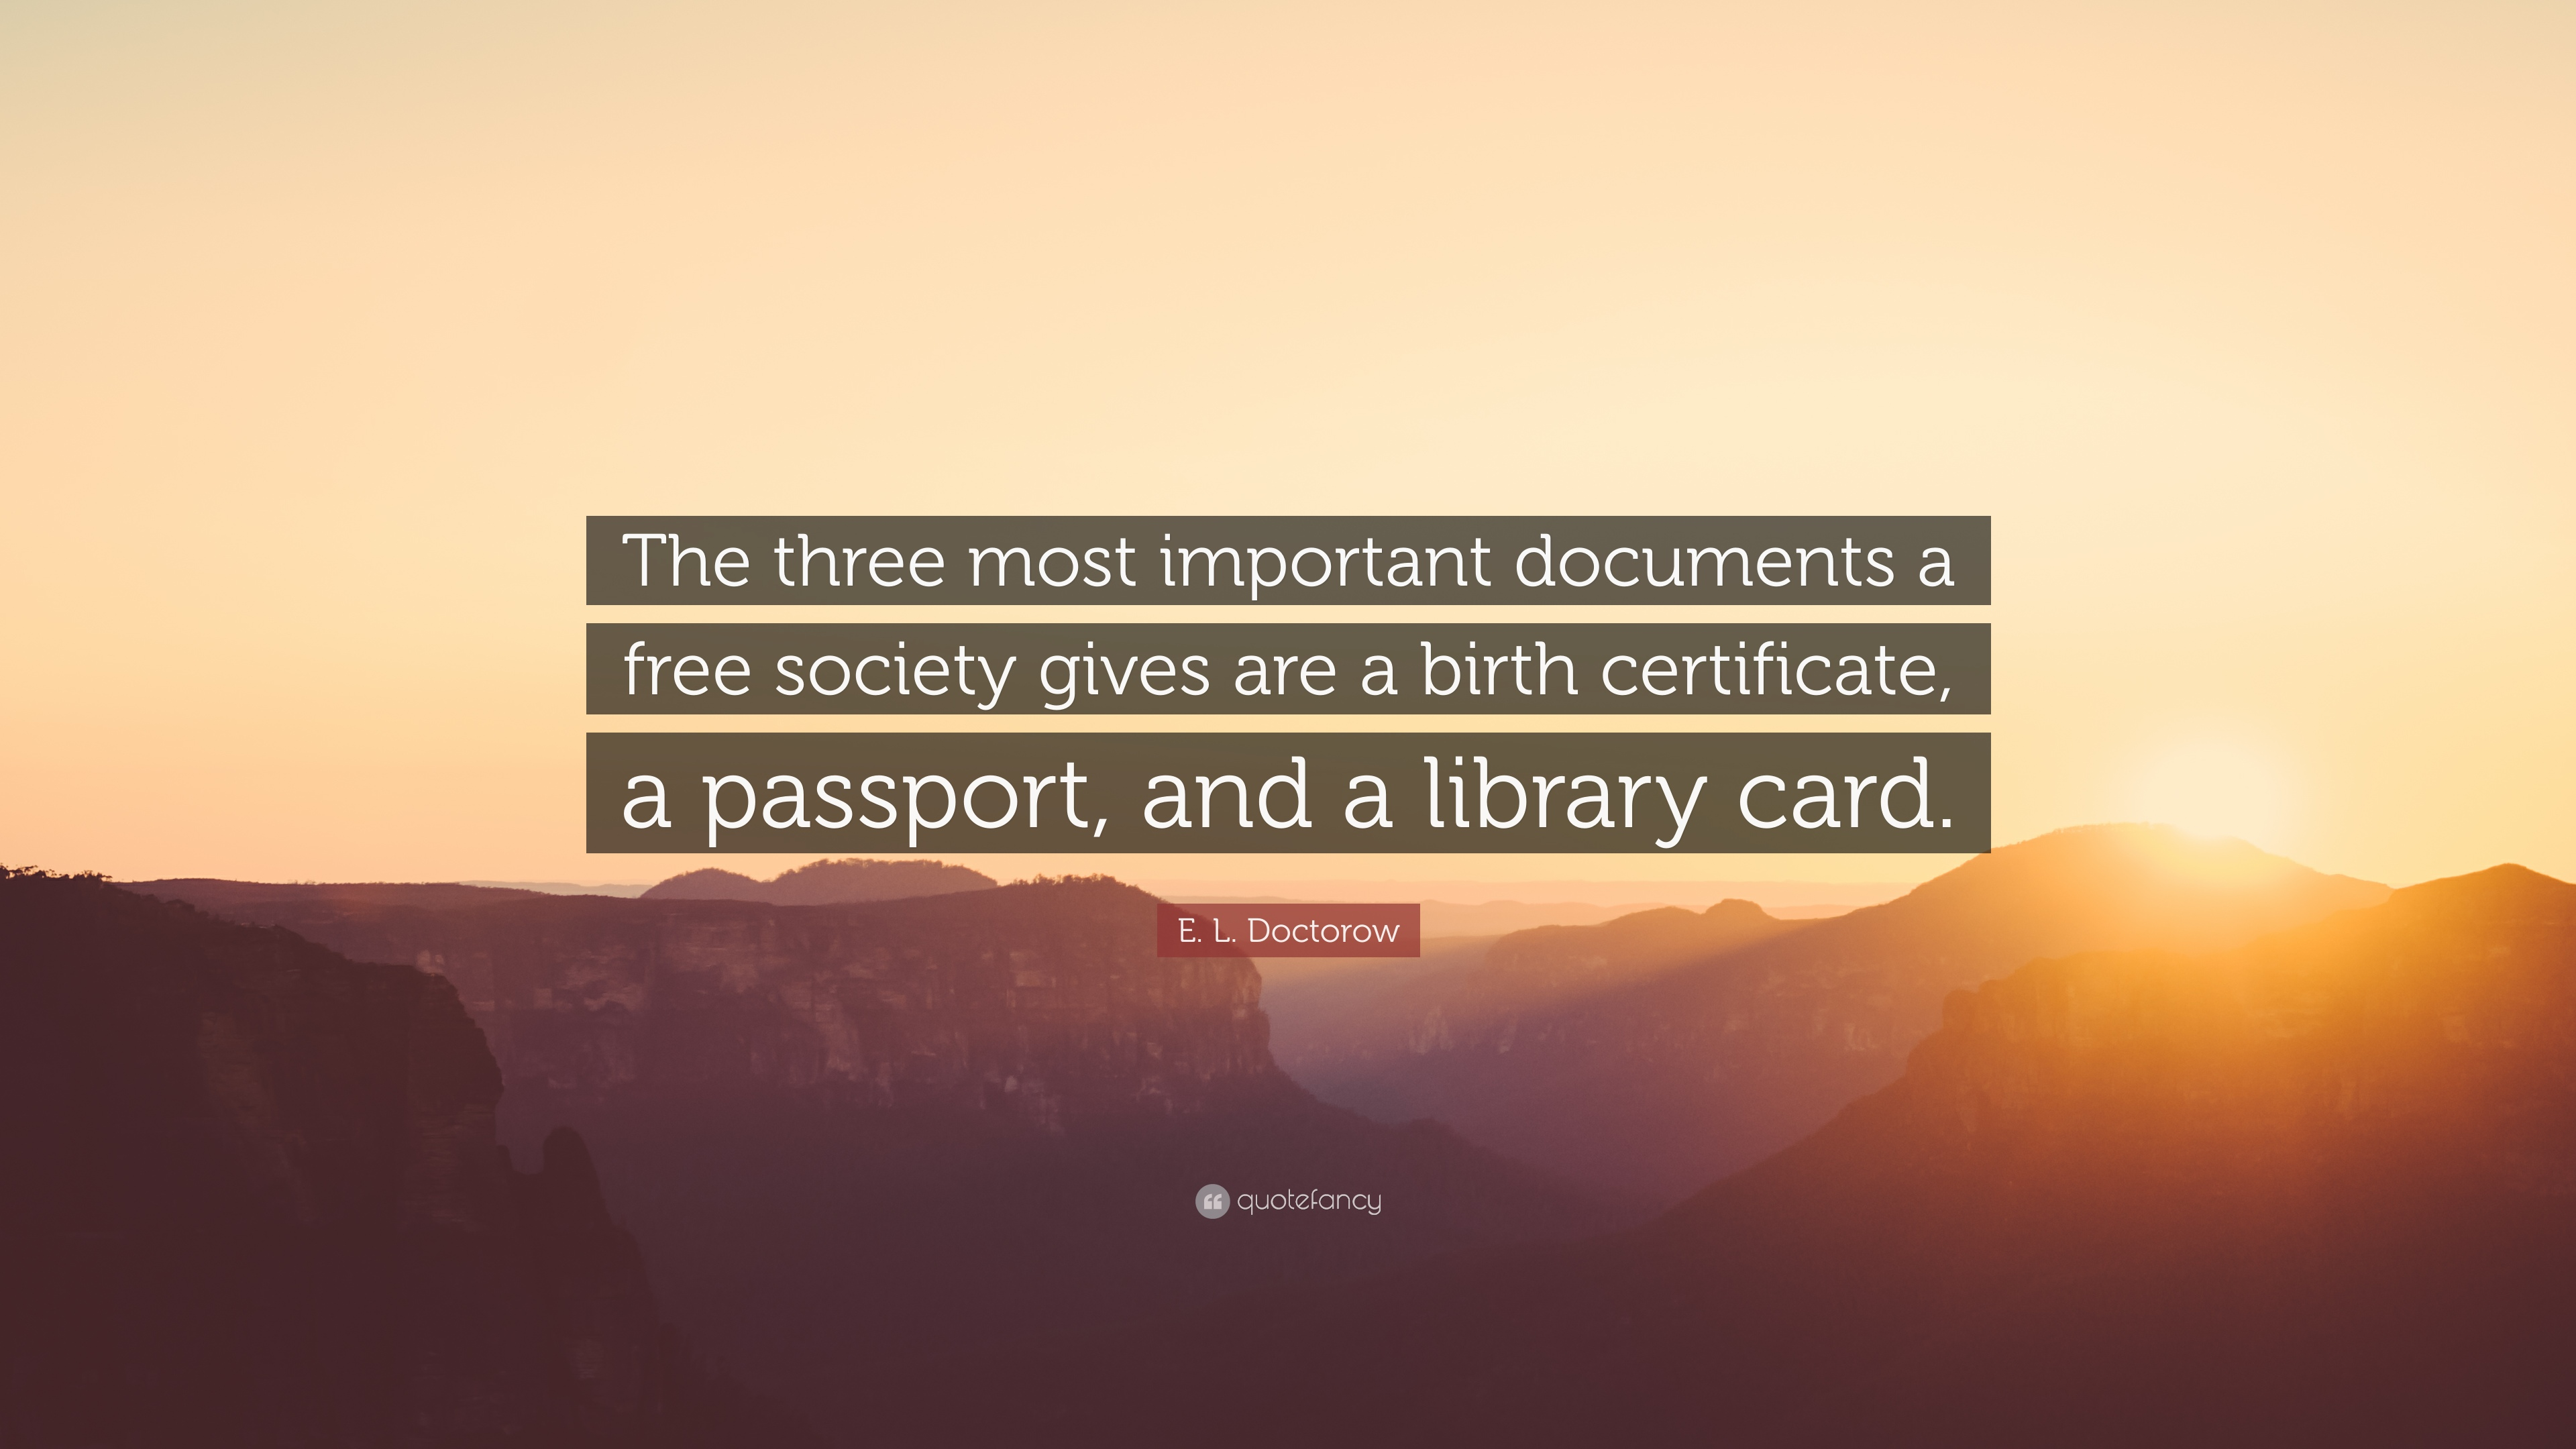 E l doctorow quote the three most important documents a free 11 wallpapers 1betcityfo Image collections